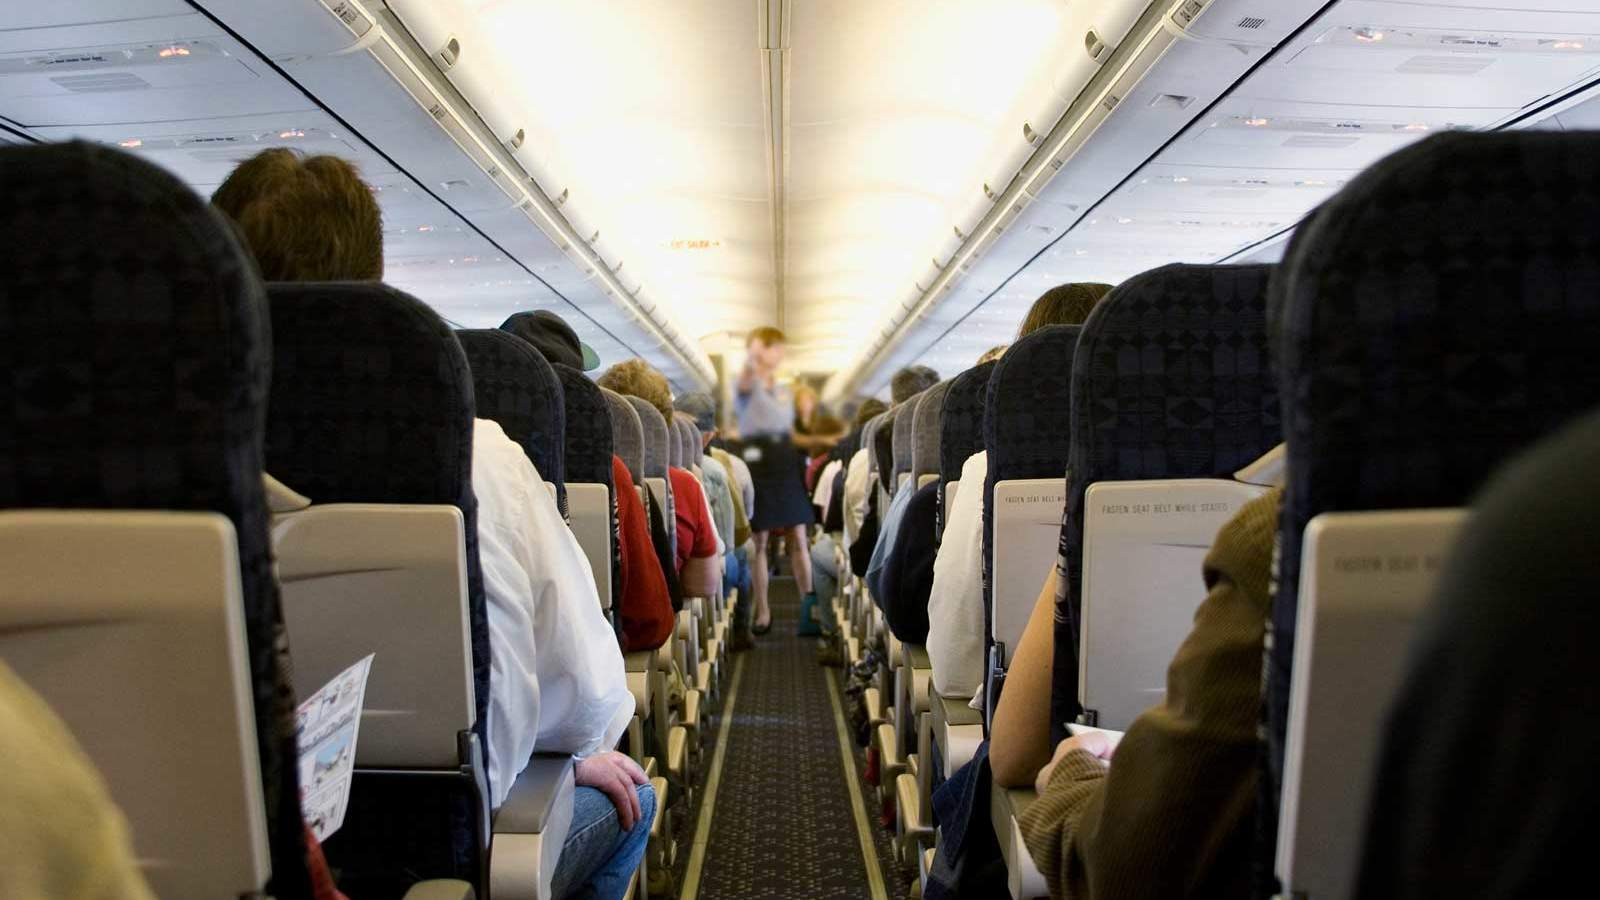 Passengers from airplane aisle